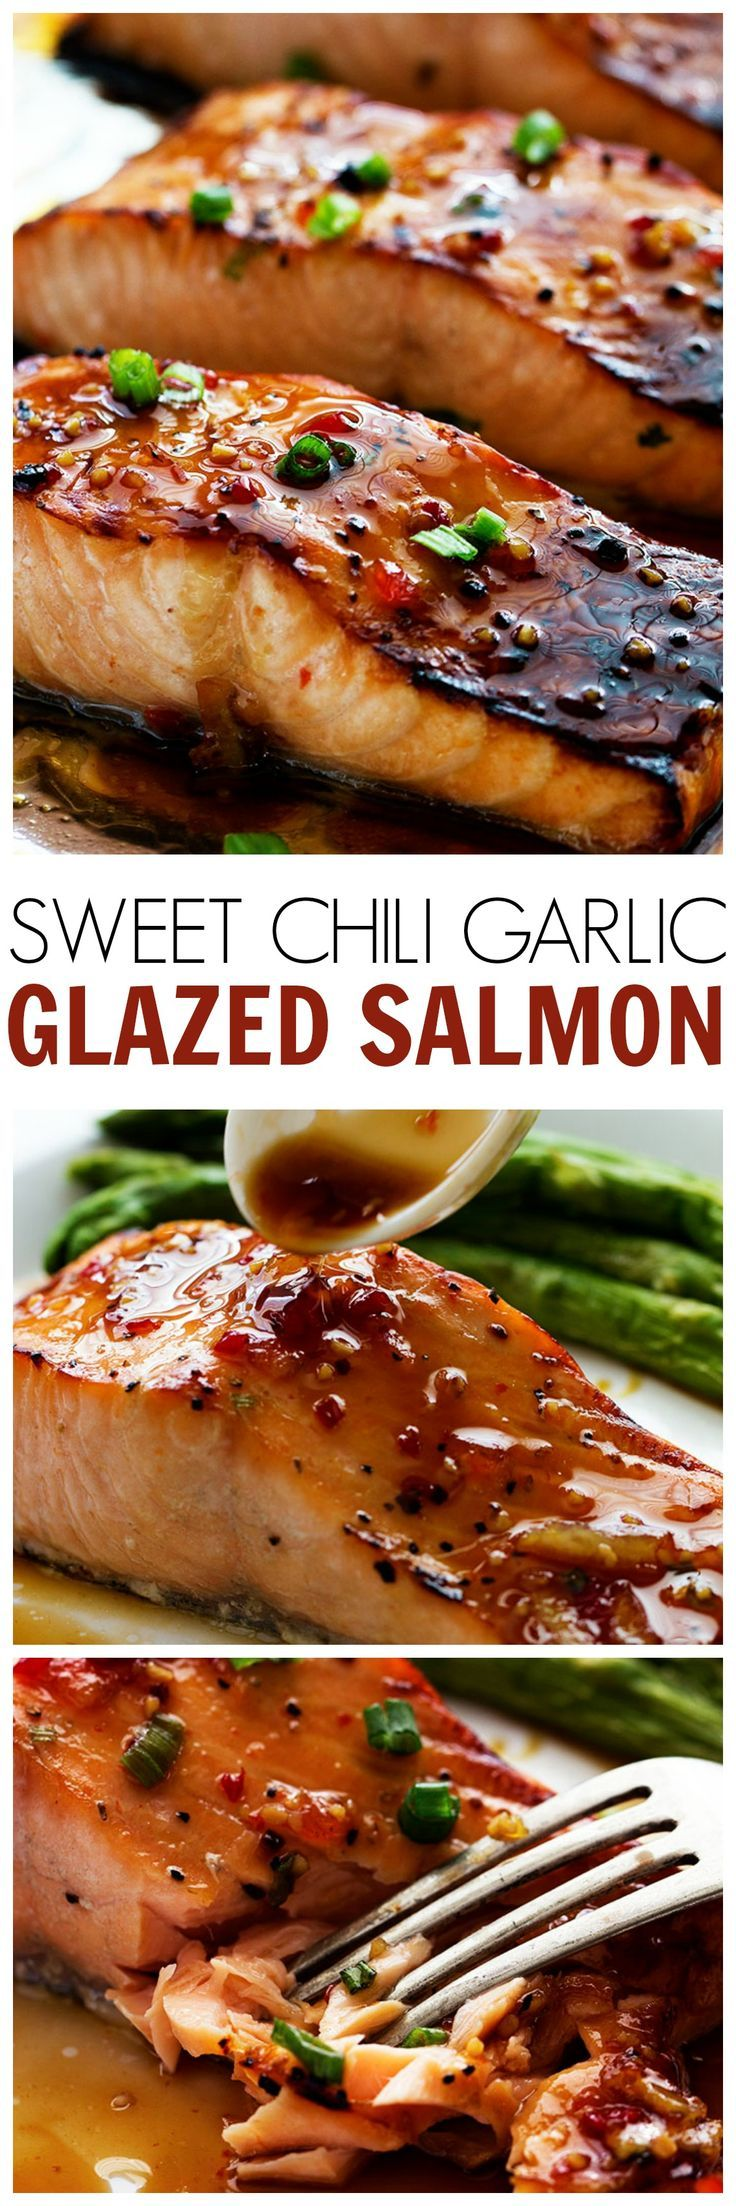 This Sweet Chili Garlic Glazed Salmon will be the BEST salmon that you ever make! The Glaze on top caramelizes to this perfect salmon and the flavor is AMAZING!! best #cooking #recipes here: http://thecookingrecipes.tk/ #interests #spaghetti #kids